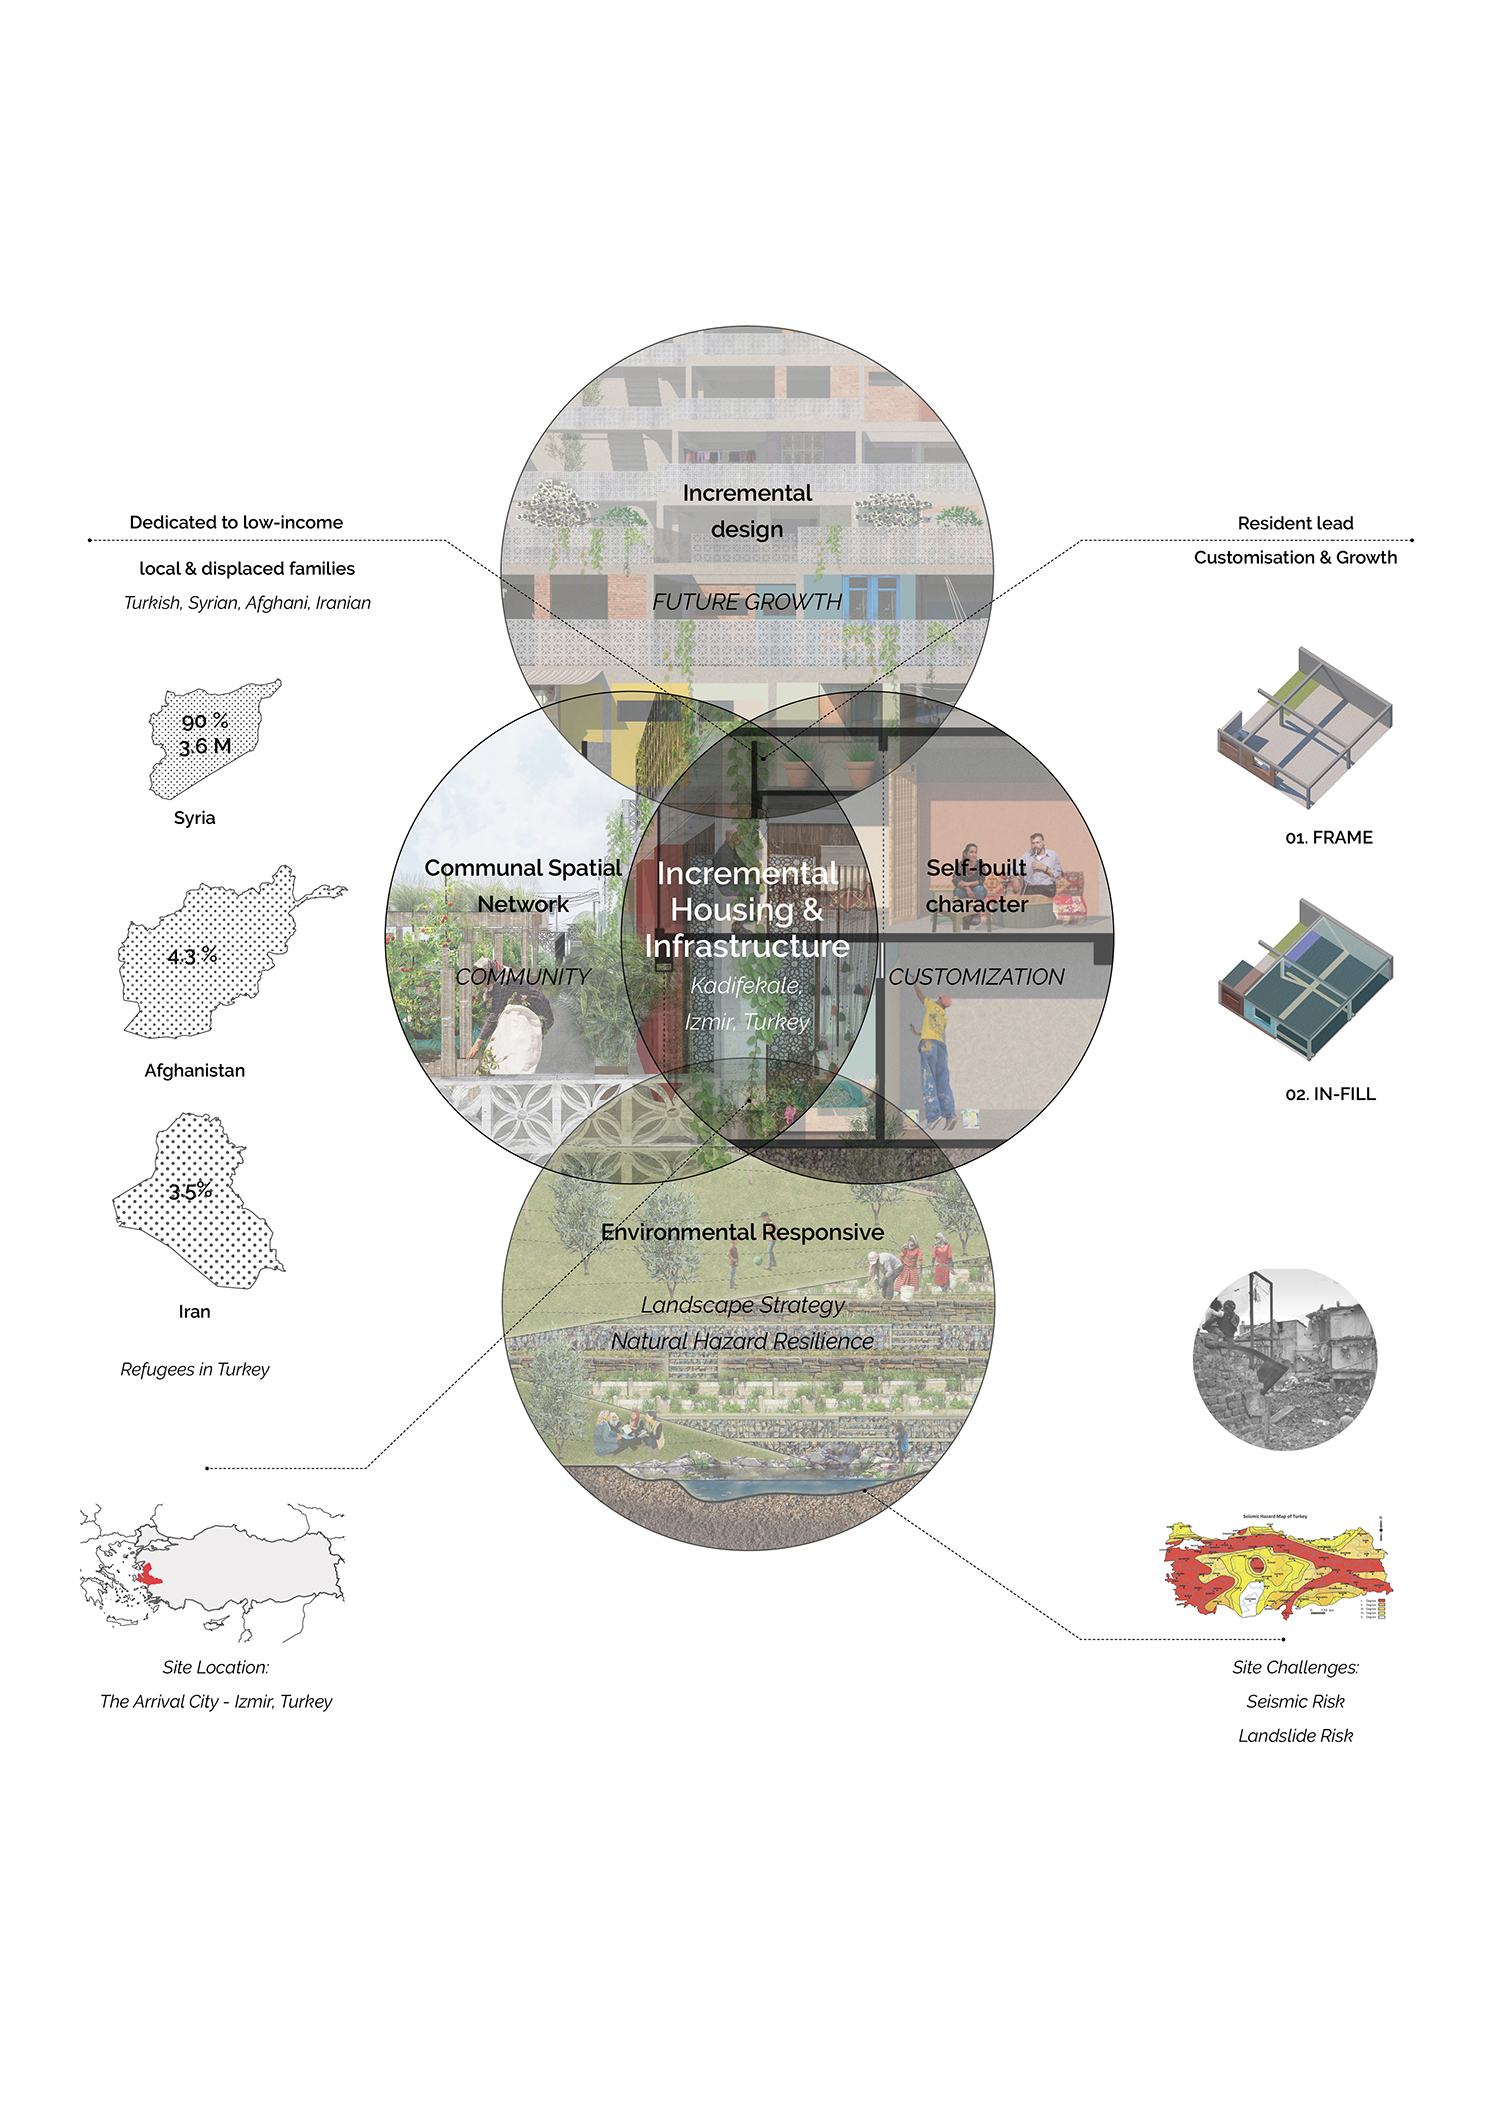 Design proposal and principles: incremental housing and infrastructure scheme